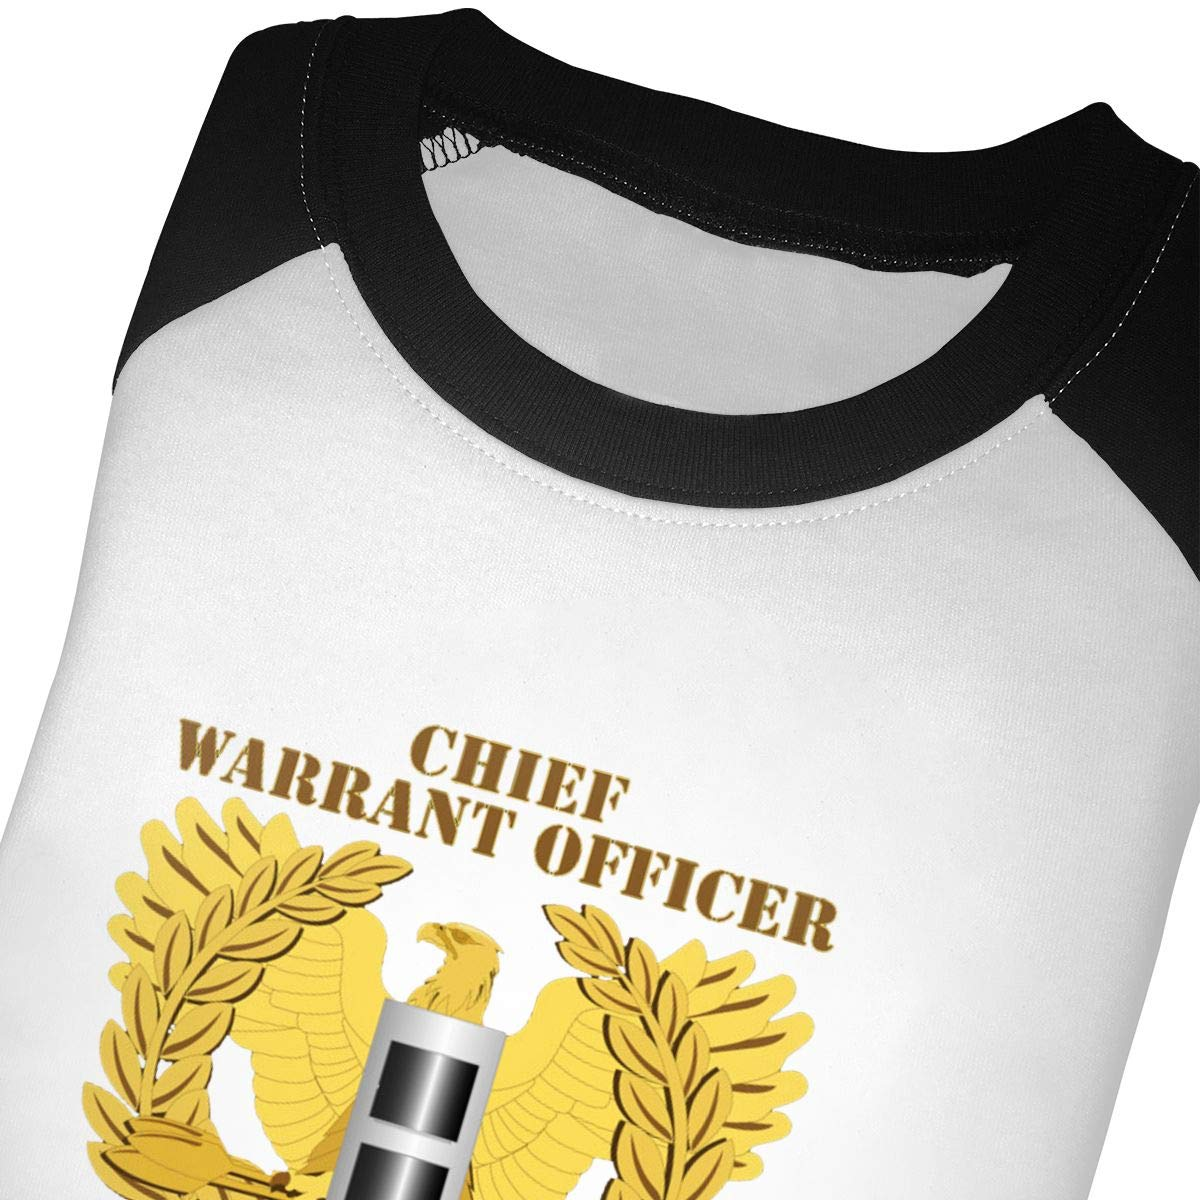 Yimo US Army Retired Chief Warrant Officer Emblem CW3 Unisex Toddler Baseball Jersey Contrast 3//4 Sleeves Tee